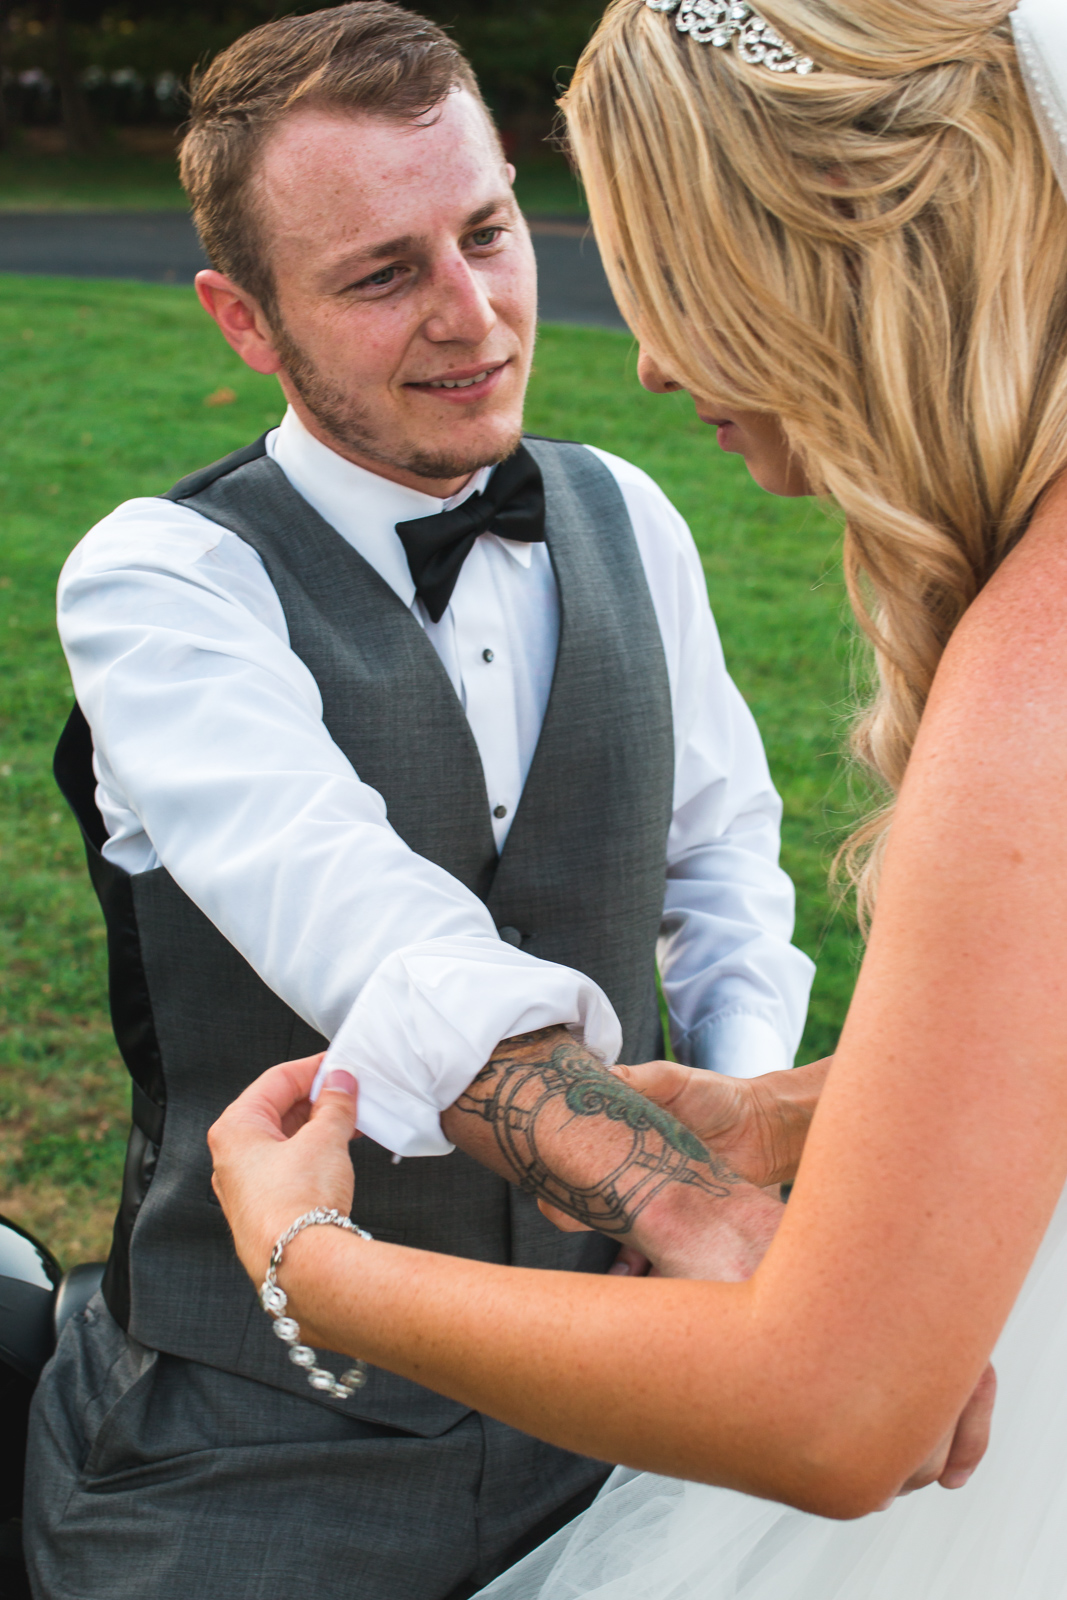 tattoo groom central valley california.jpg